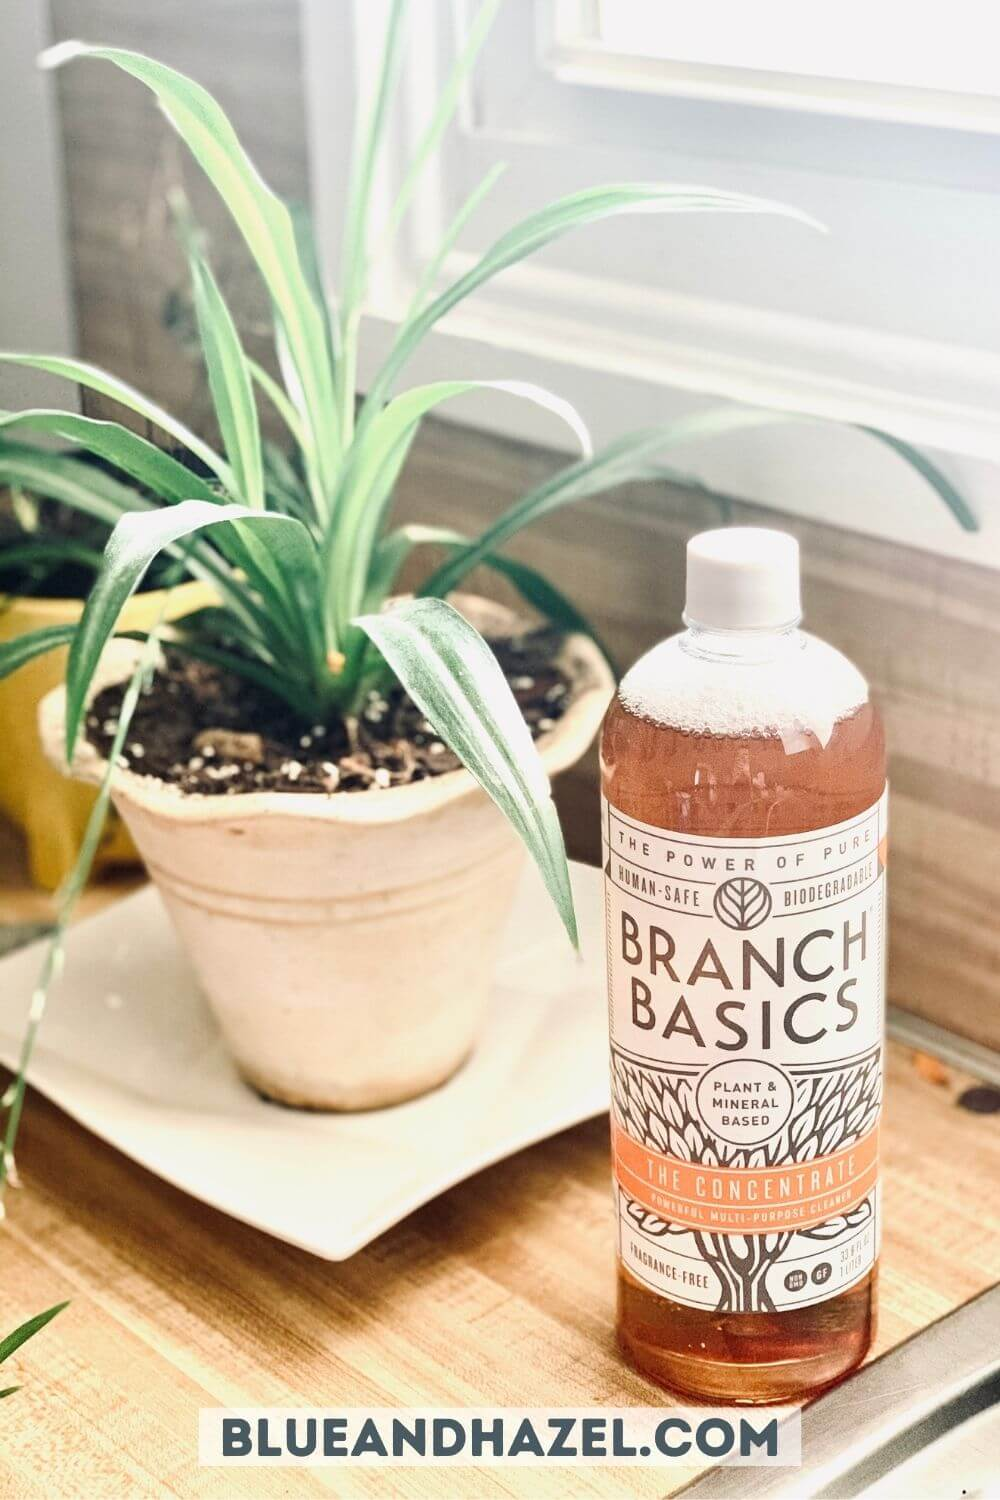 Branch Basic concentrate bottle next to a green leafy plant.